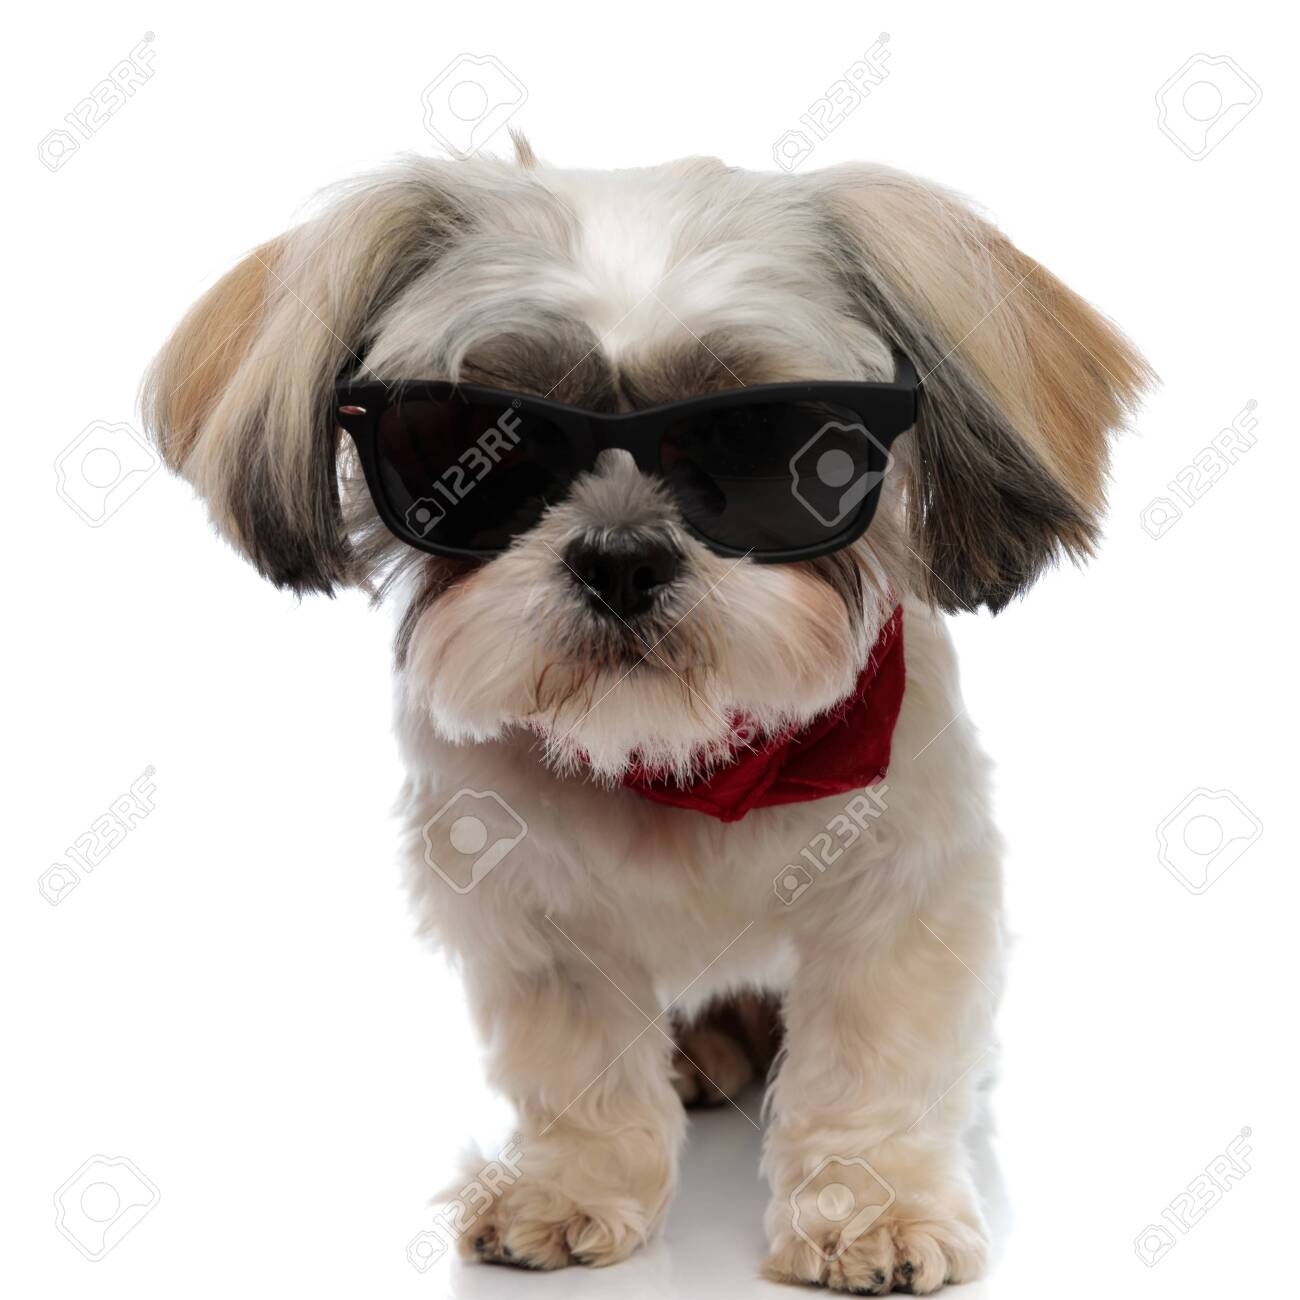 Furious Shih Tzu Puppy Wearing Sunglasses And Bandana While Walking Stock Photo Picture And Royalty Free Image Image 156555025